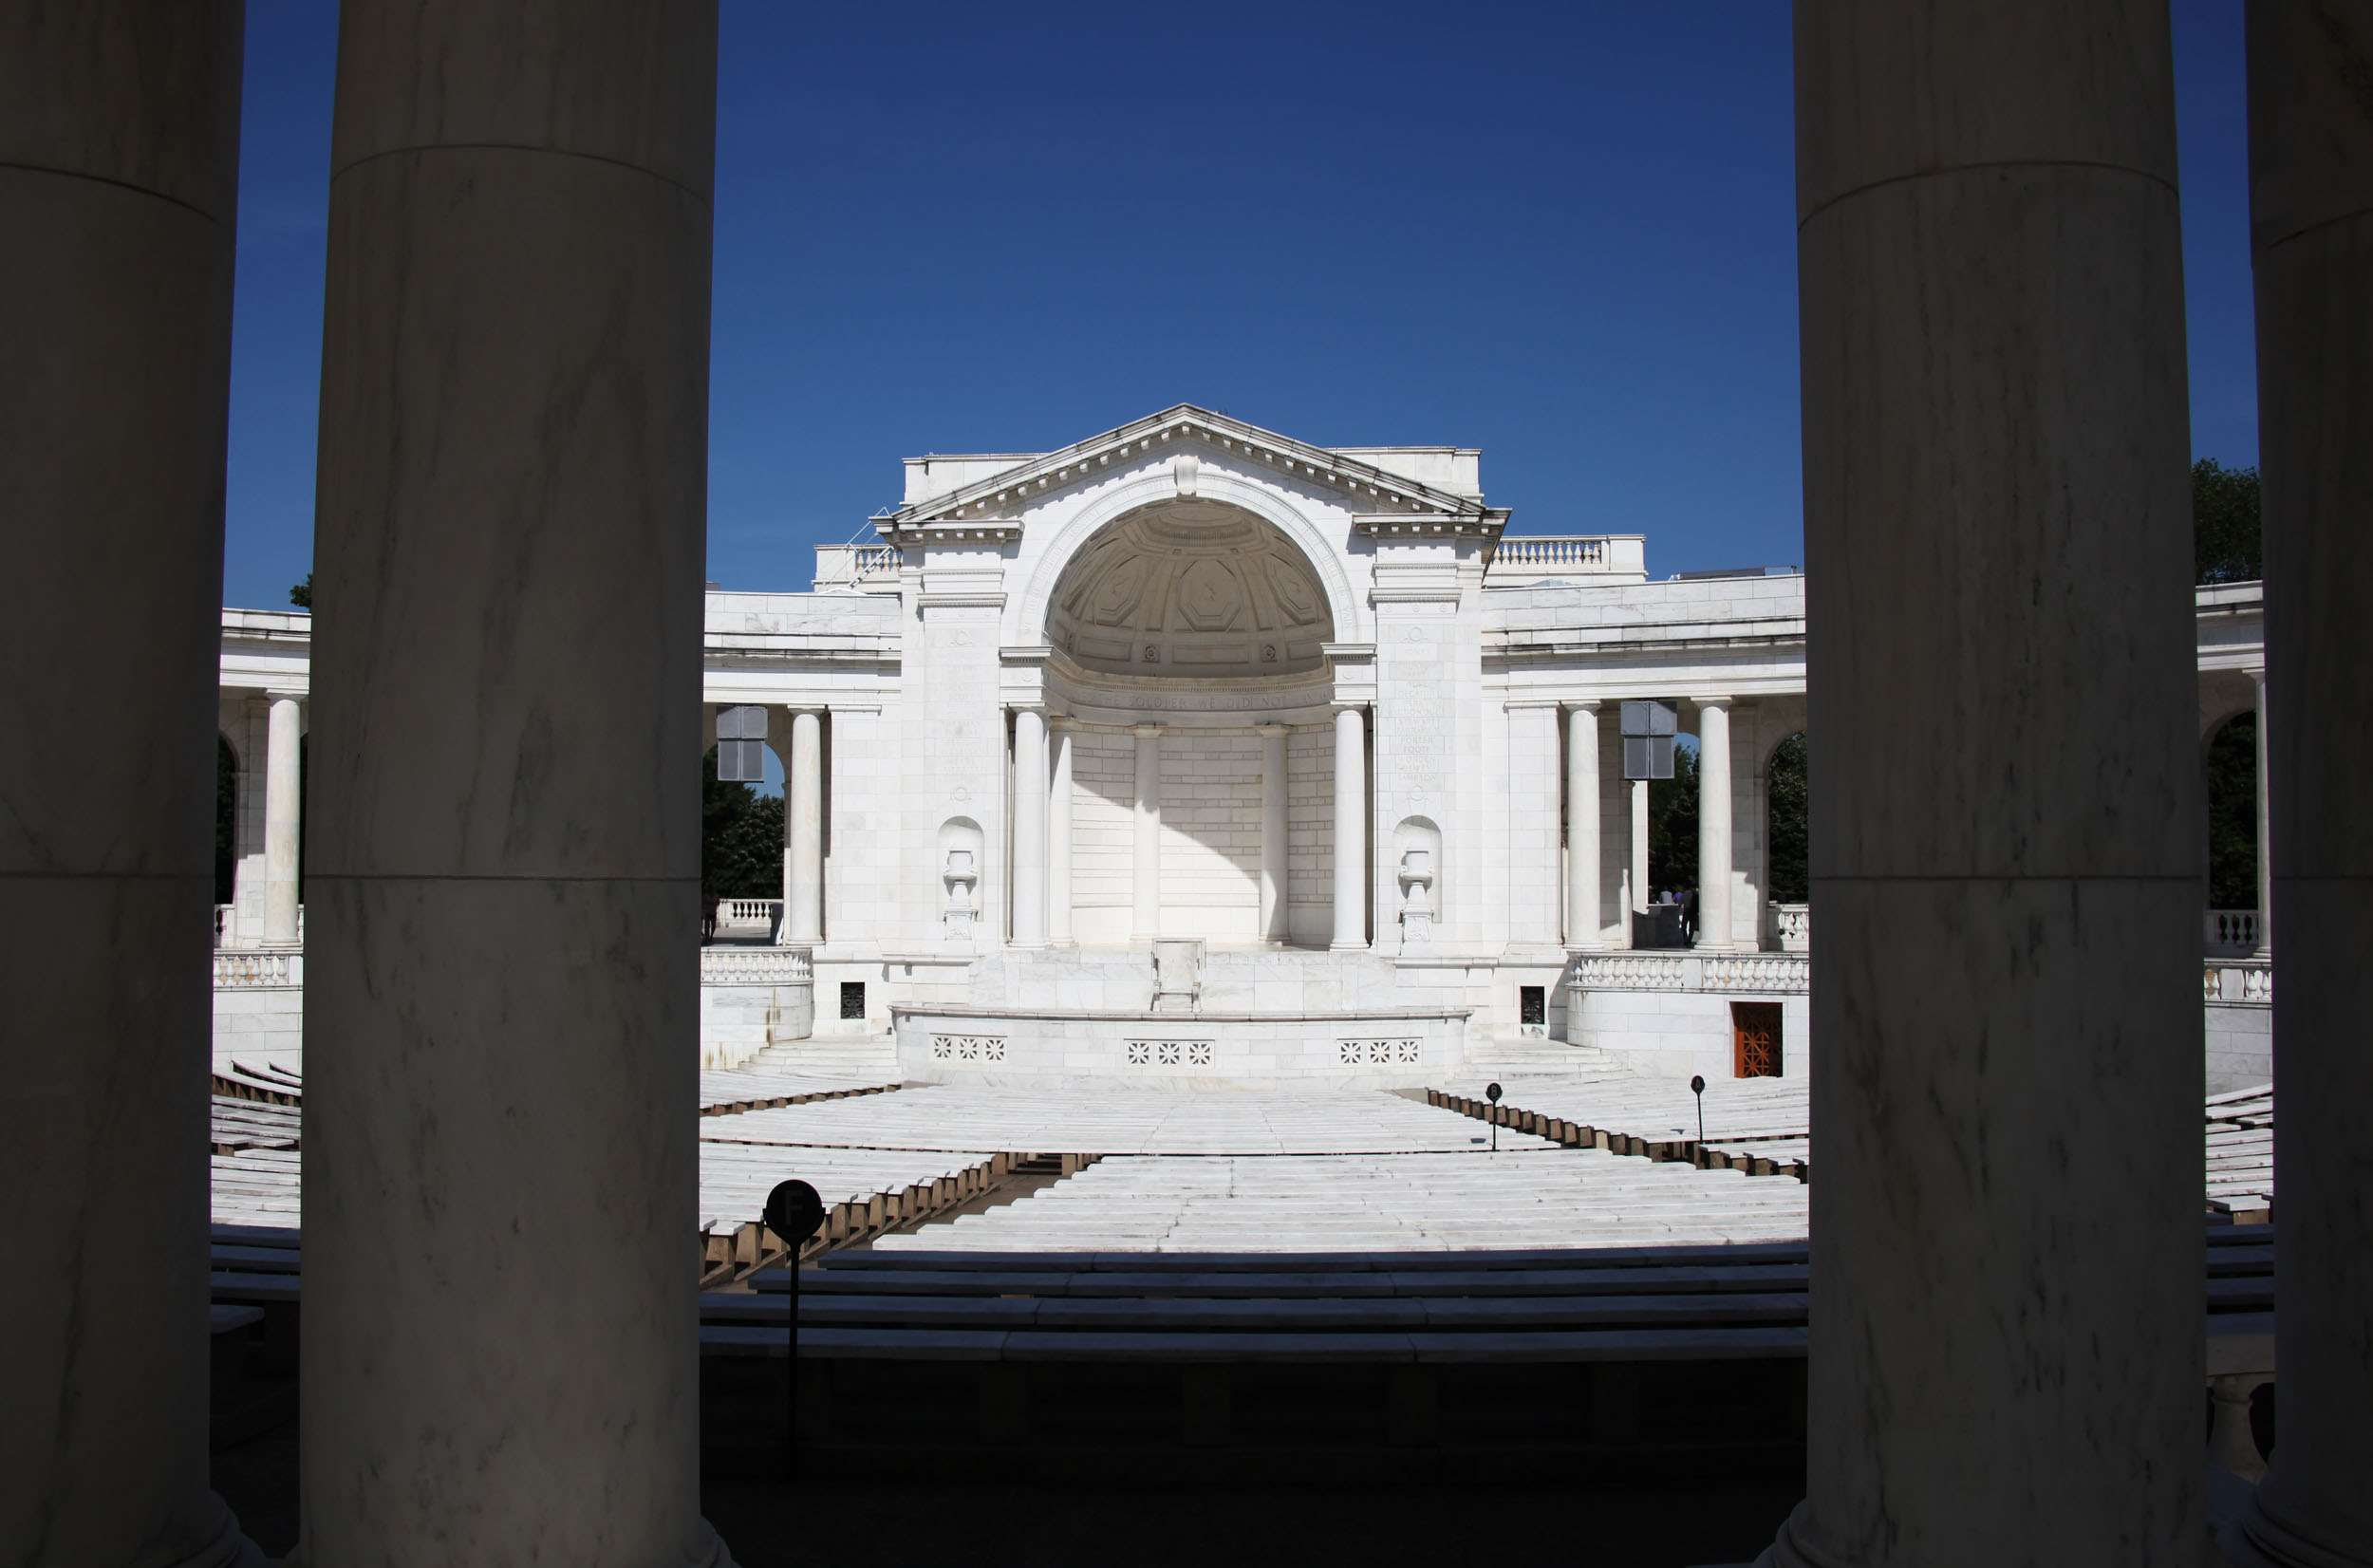 memorial amphitheater The Memorial Amphitheater at Arlington National Cemetery